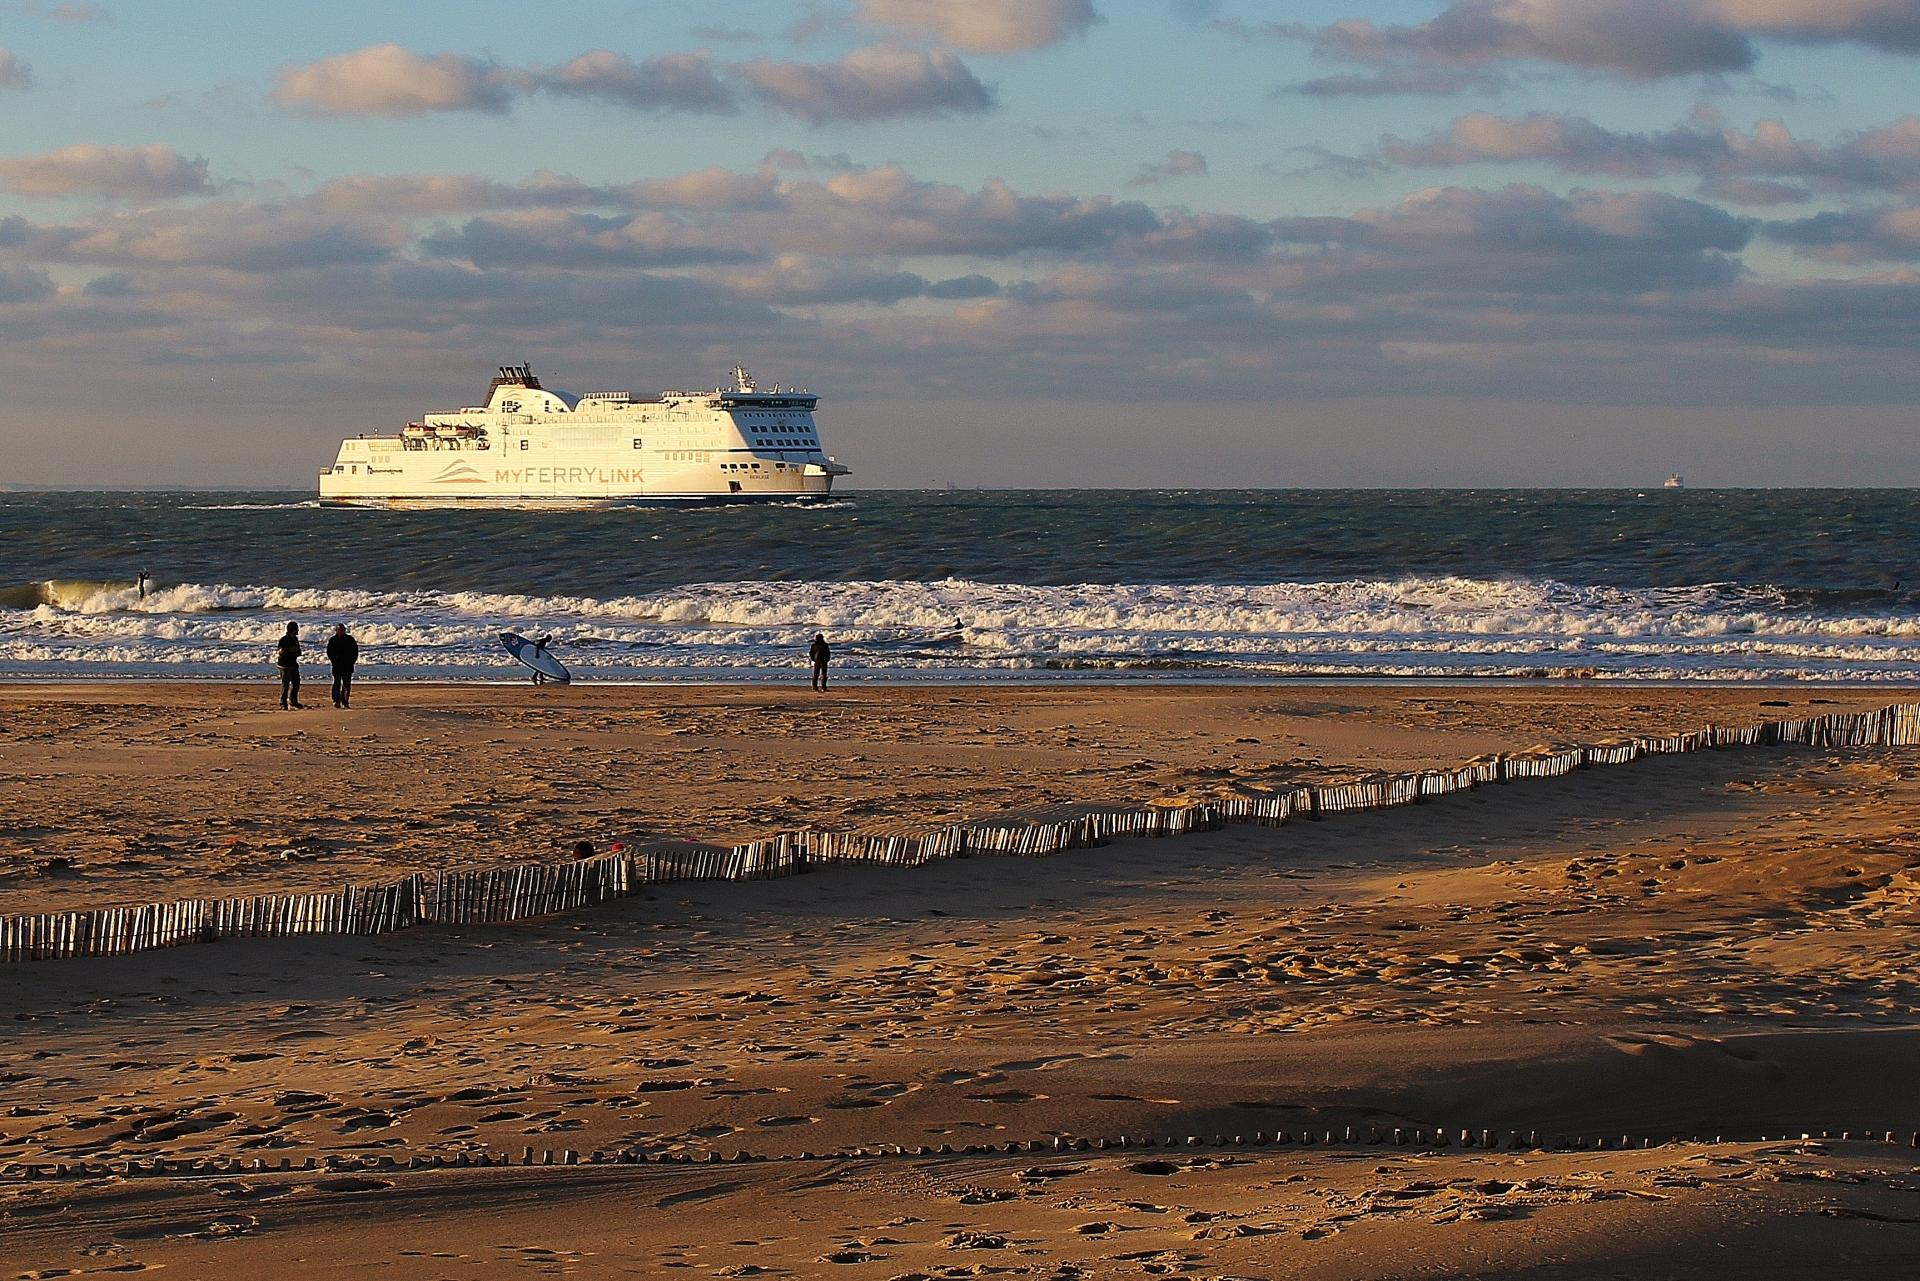 Top photo calais plage et surfeur